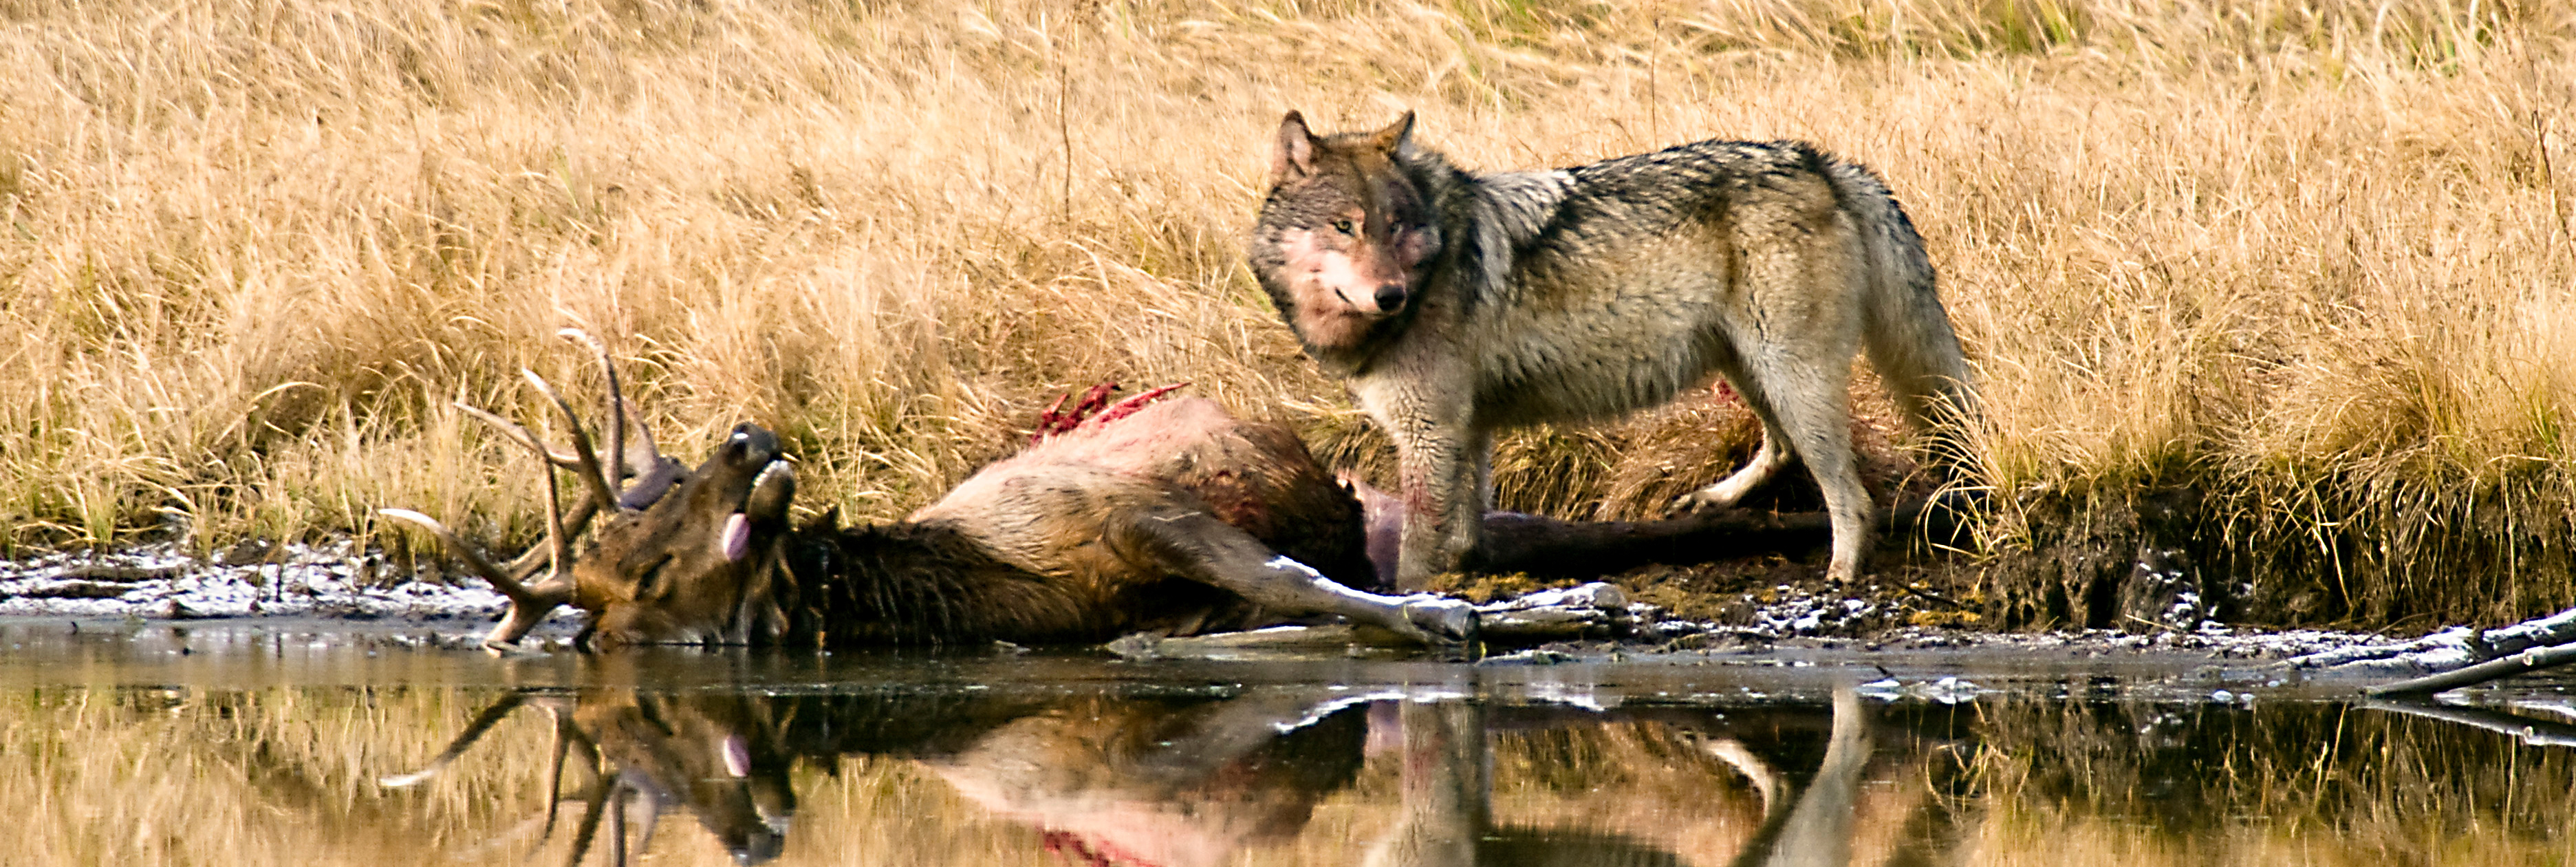 Idaho Offers to Pay Hunters Up to 2,500 to Cull Wolf Population